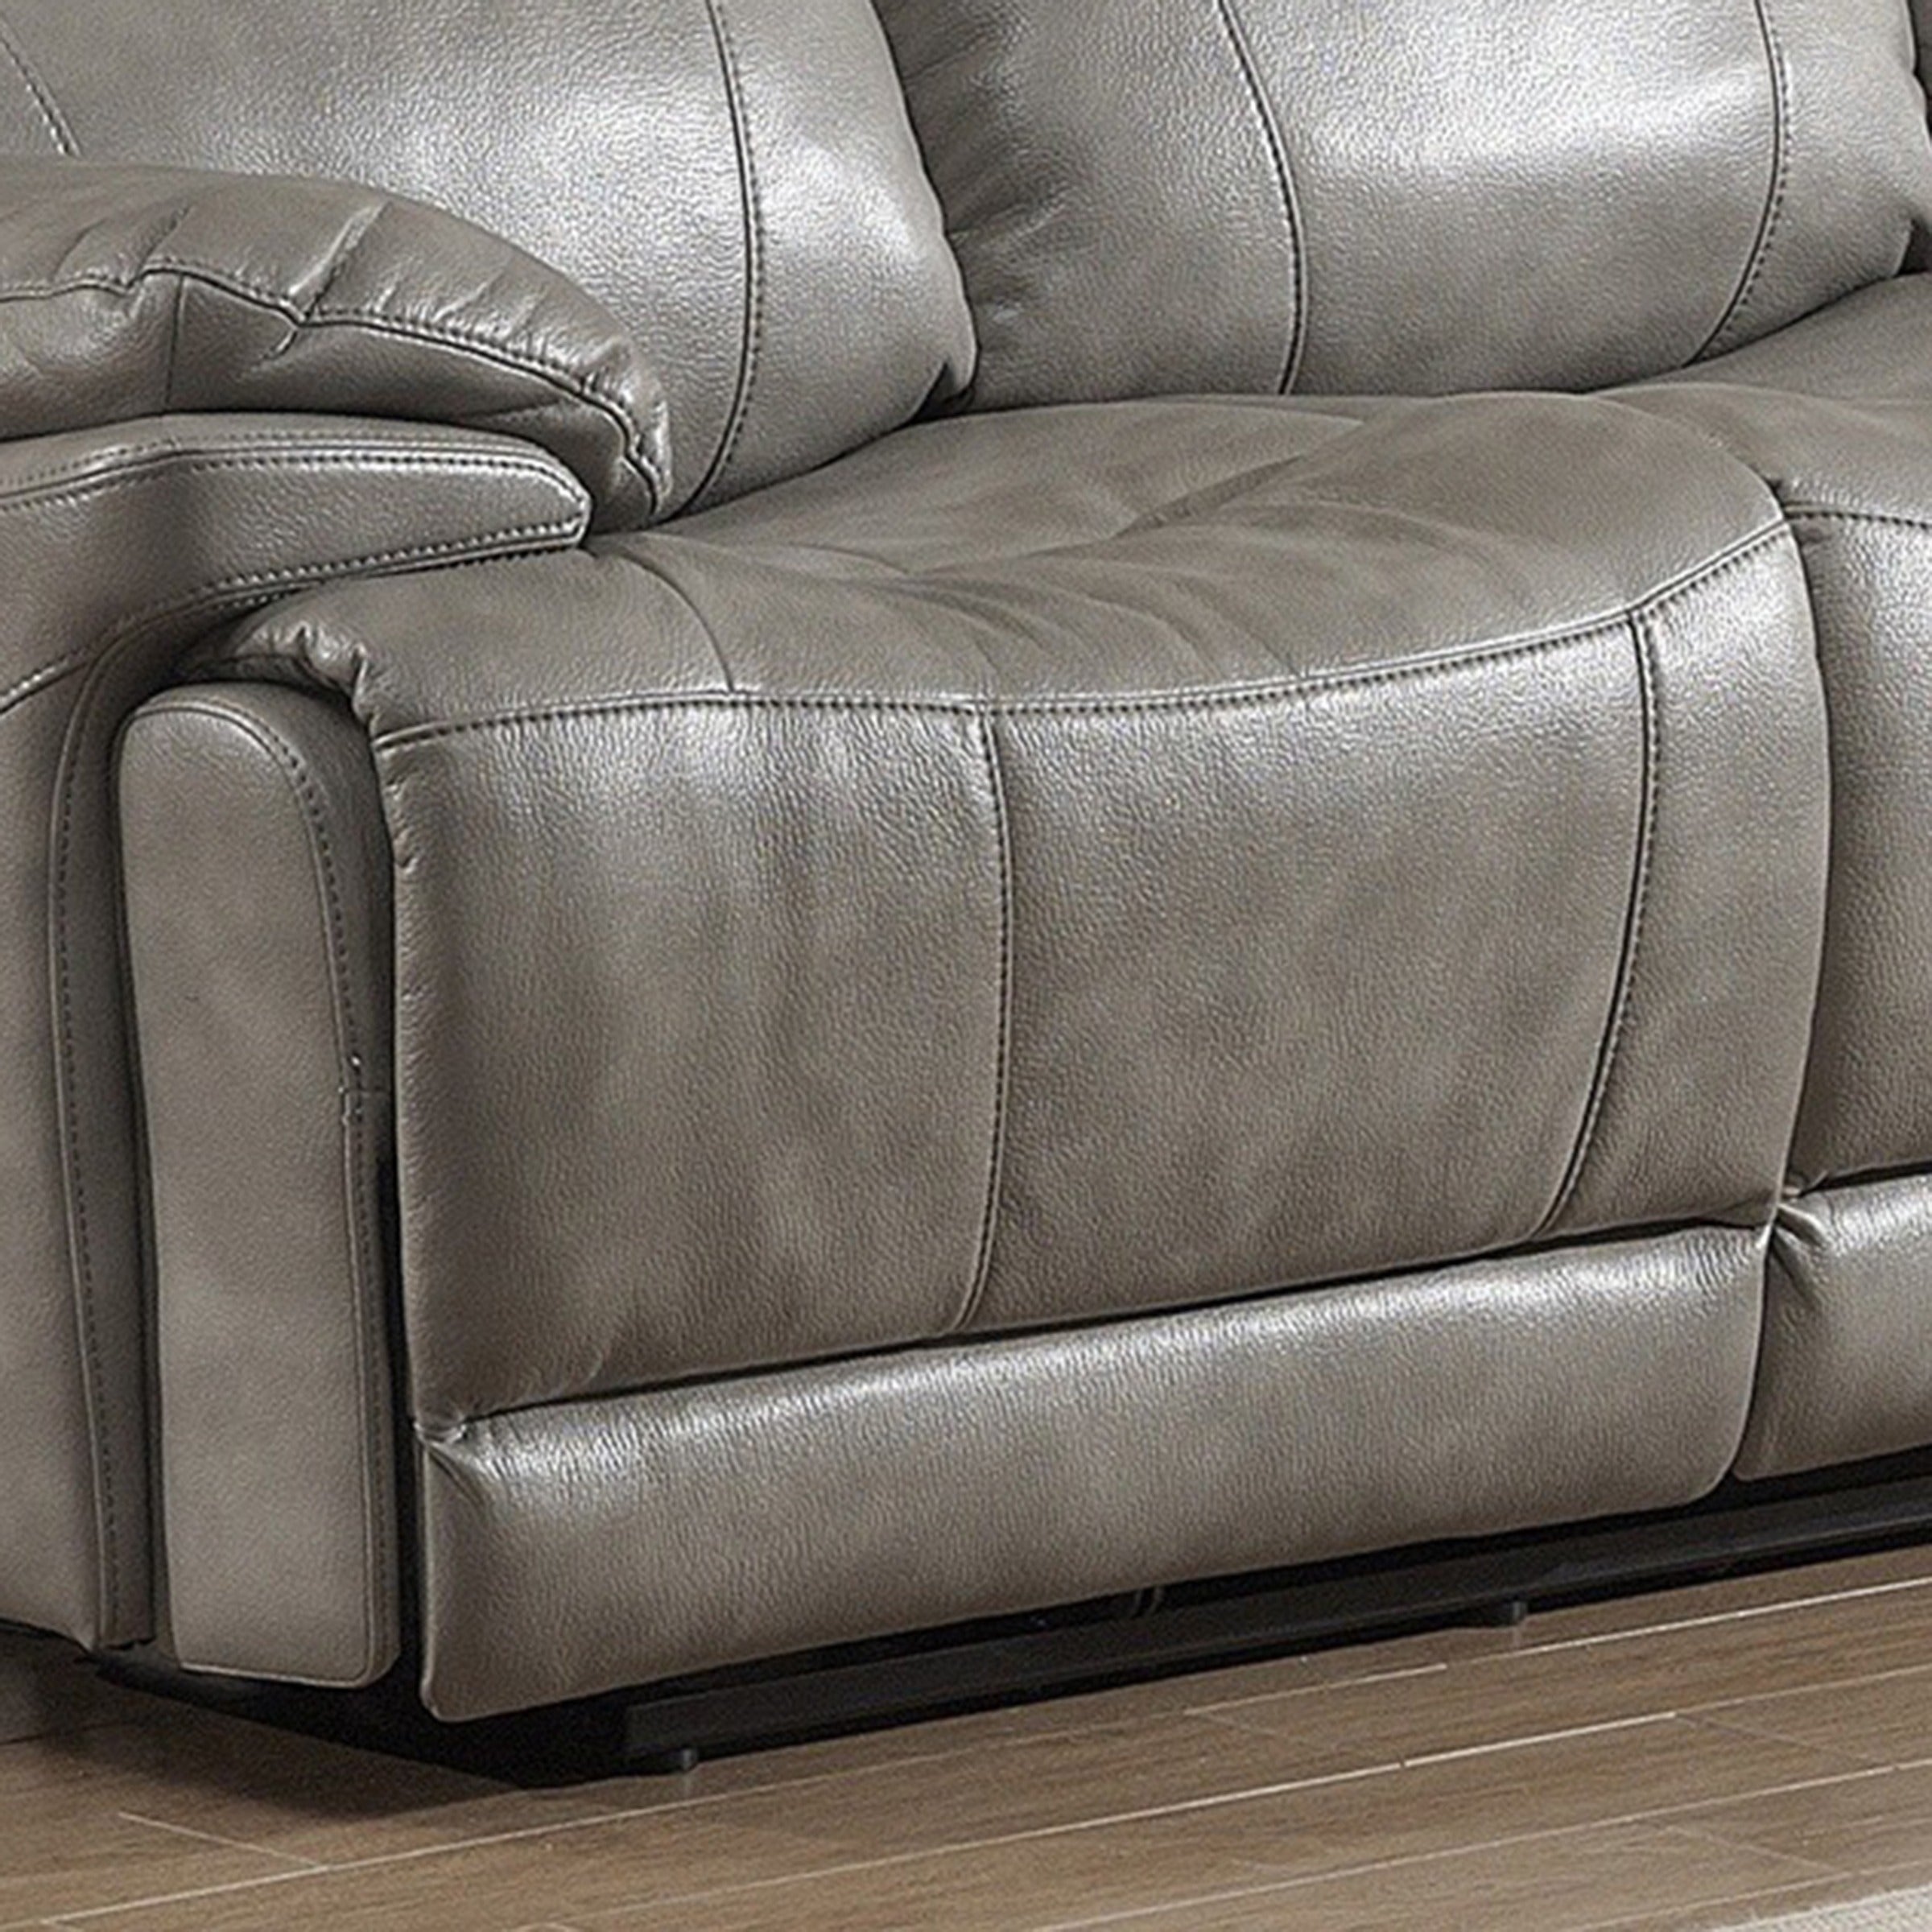 shop estella contemporary reclining sofa loveseat with storage rh overstock com Discount Reclining Sofas and Loveseats Discount Reclining Sofas and Loveseats